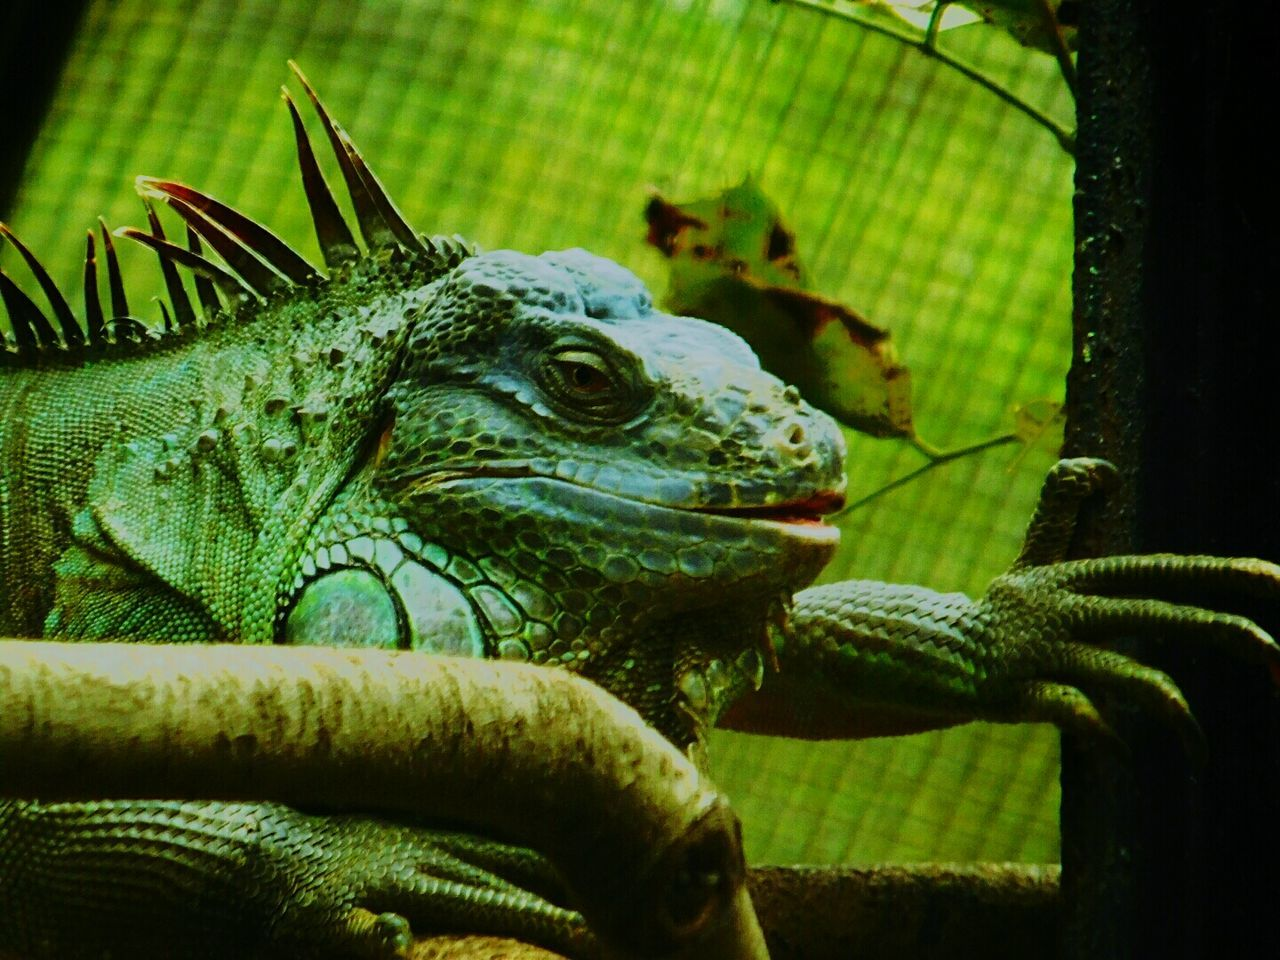 Reptile Close-up Looking For Freedom Sadness😢 Alone Looking At Camera Chameleon On A Tree Leaf Nature Resting Giant Chameleon One Animal Tree Chameleon Reptile Caged Nature Animal Wildlife Wildlife Photography